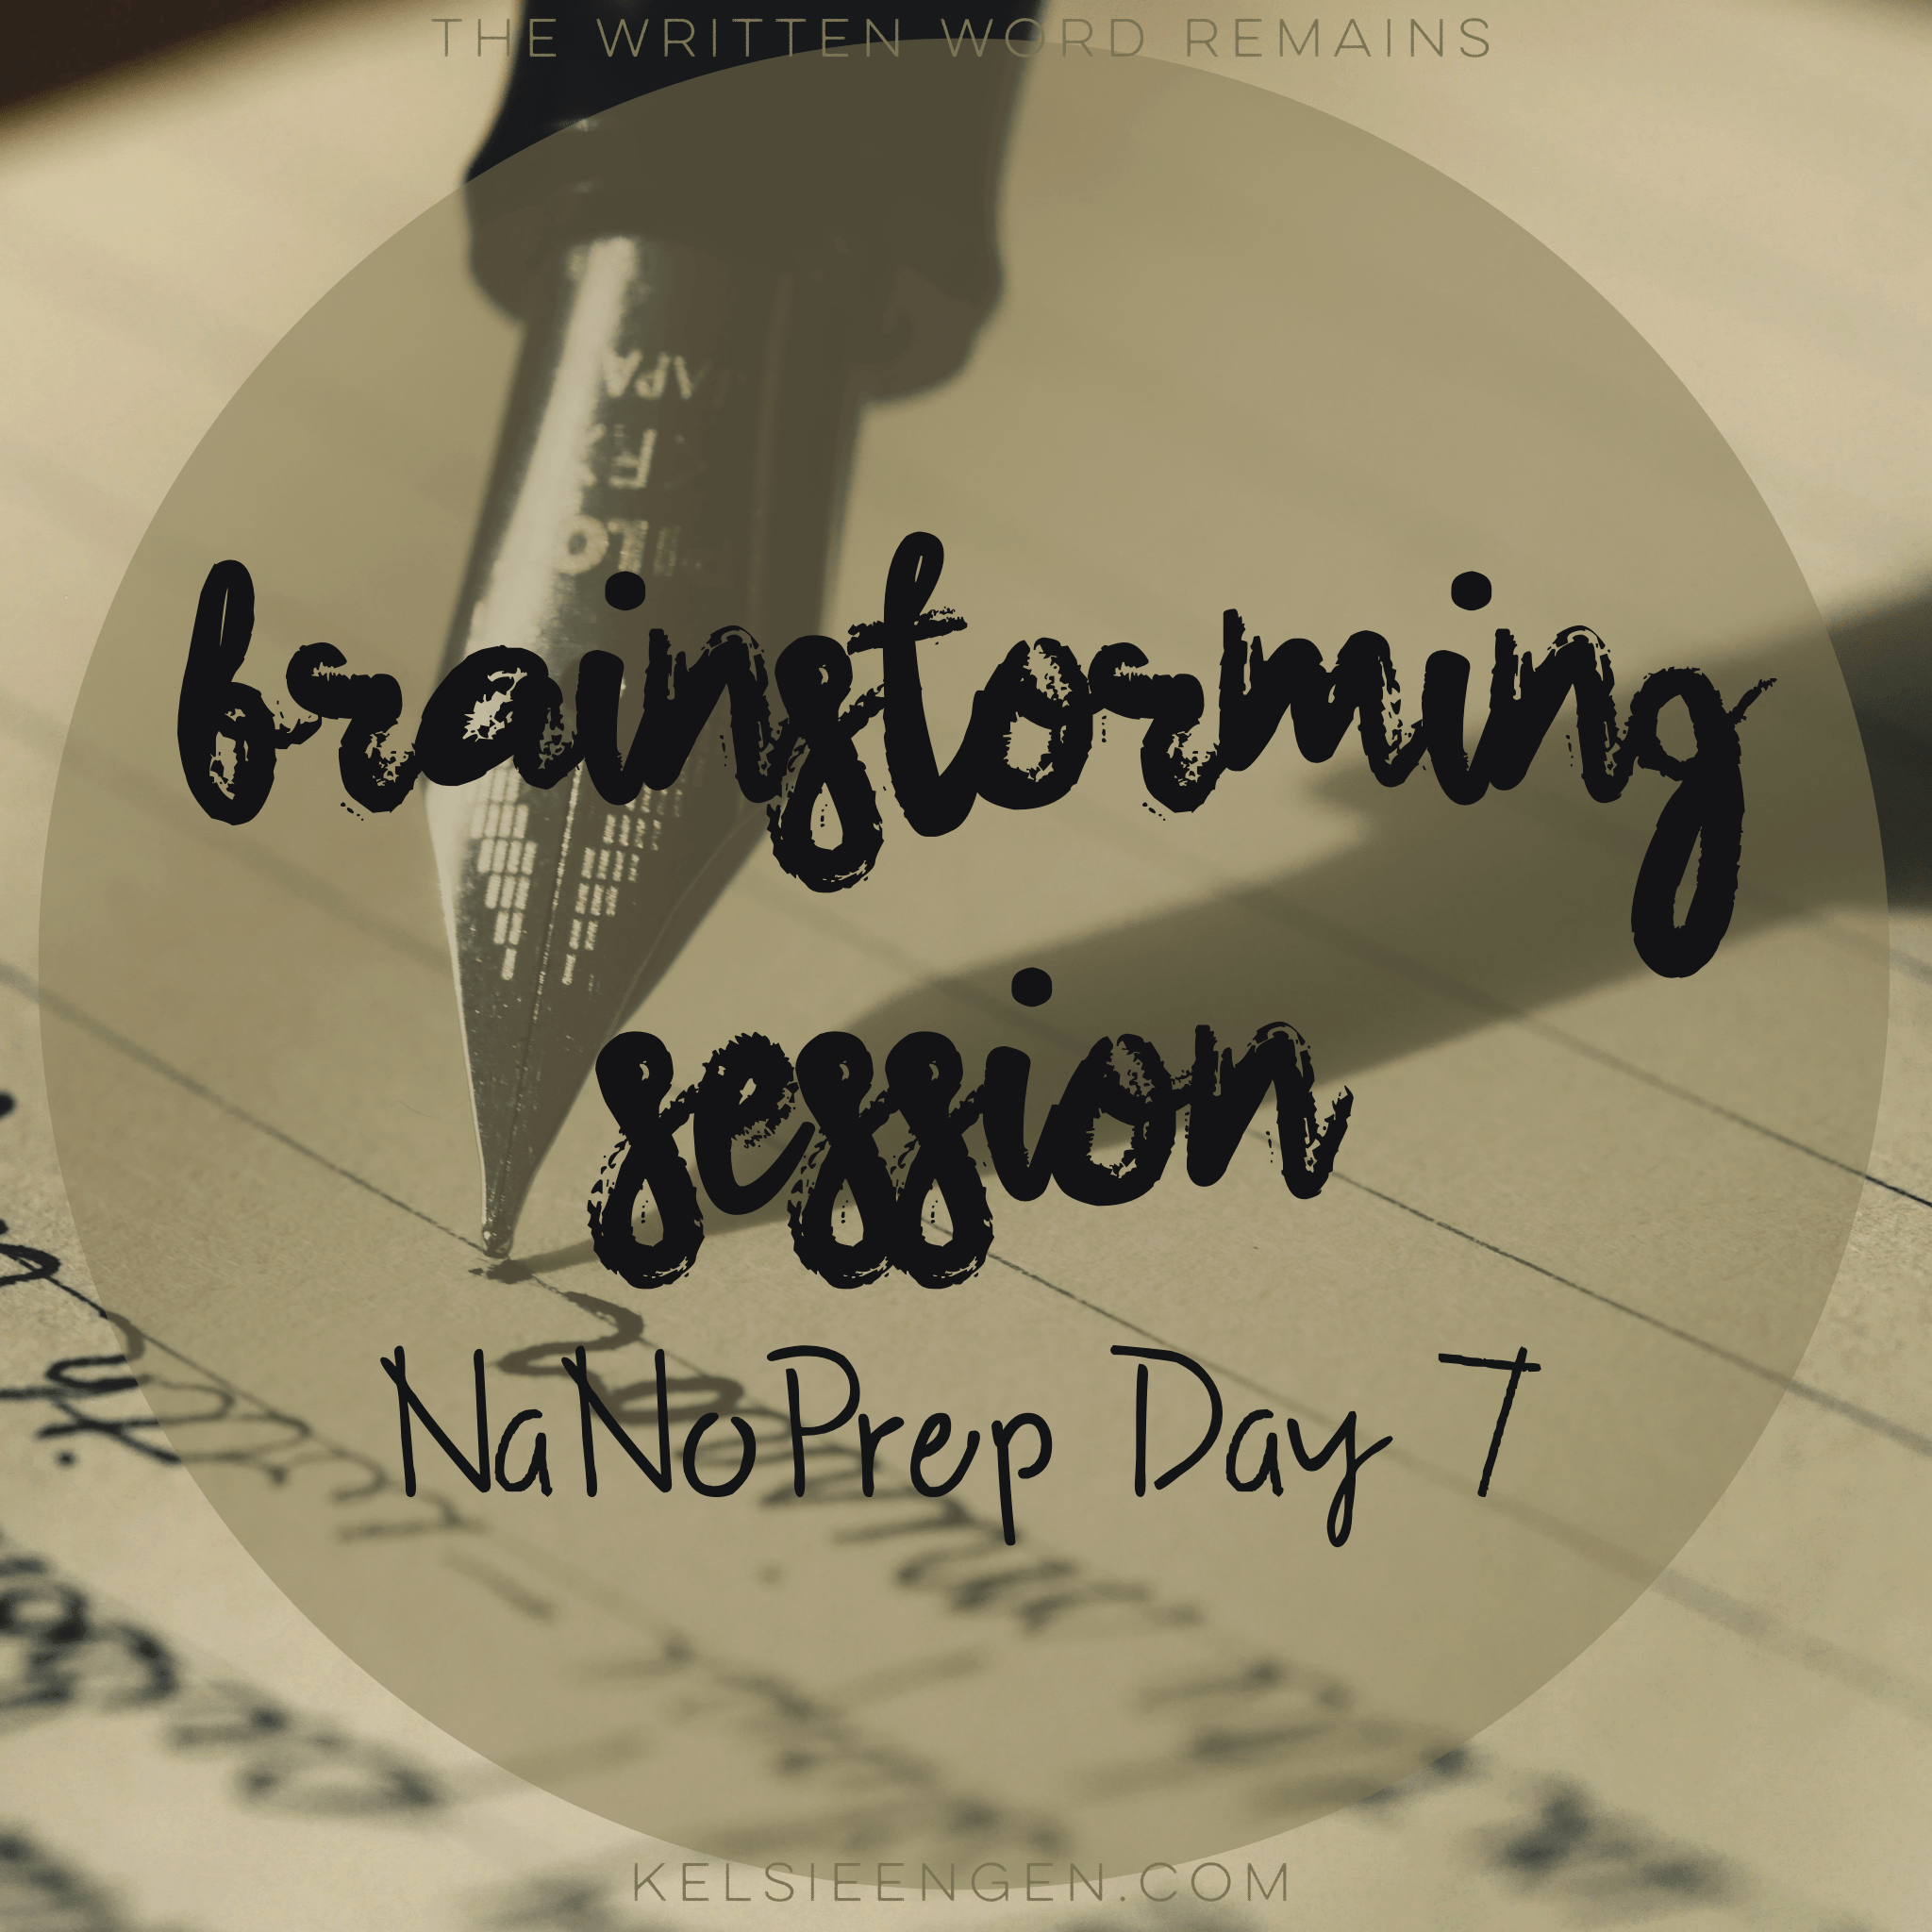 NaNoPrep #7: Brainstorm Session